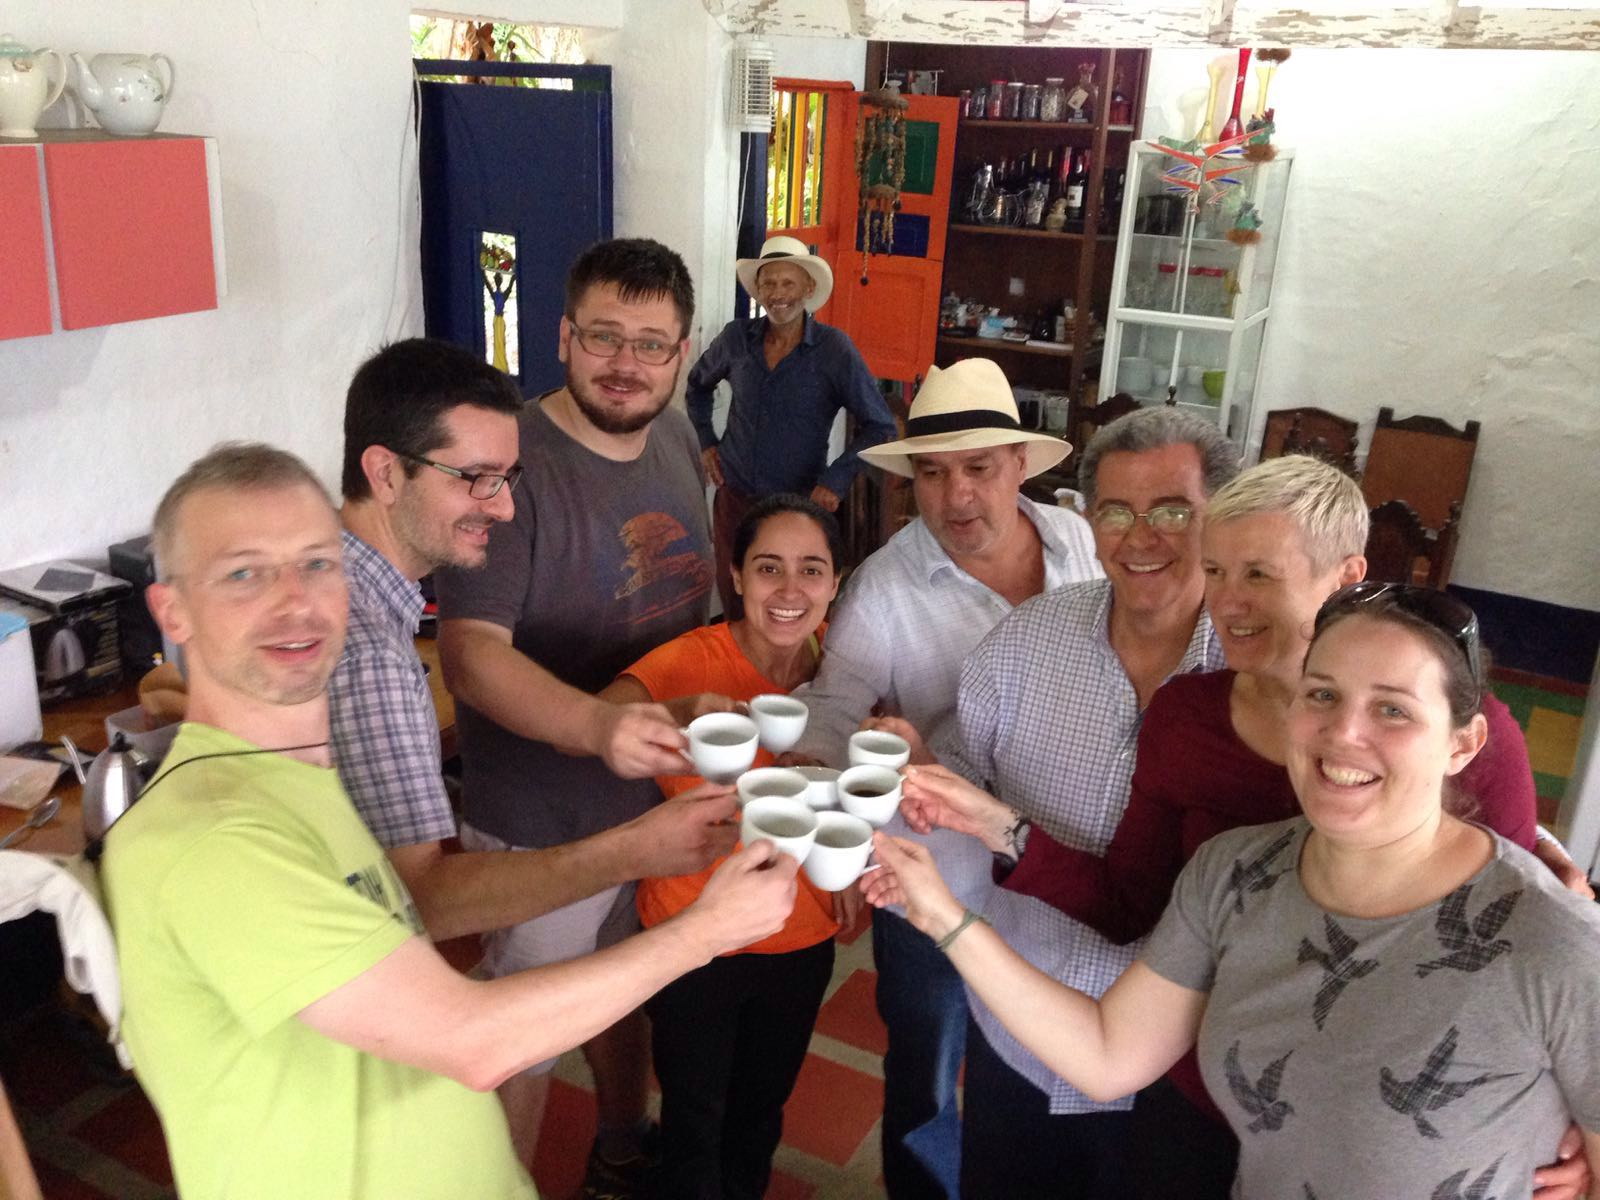 Salud! The On Board gang traveling Central America.